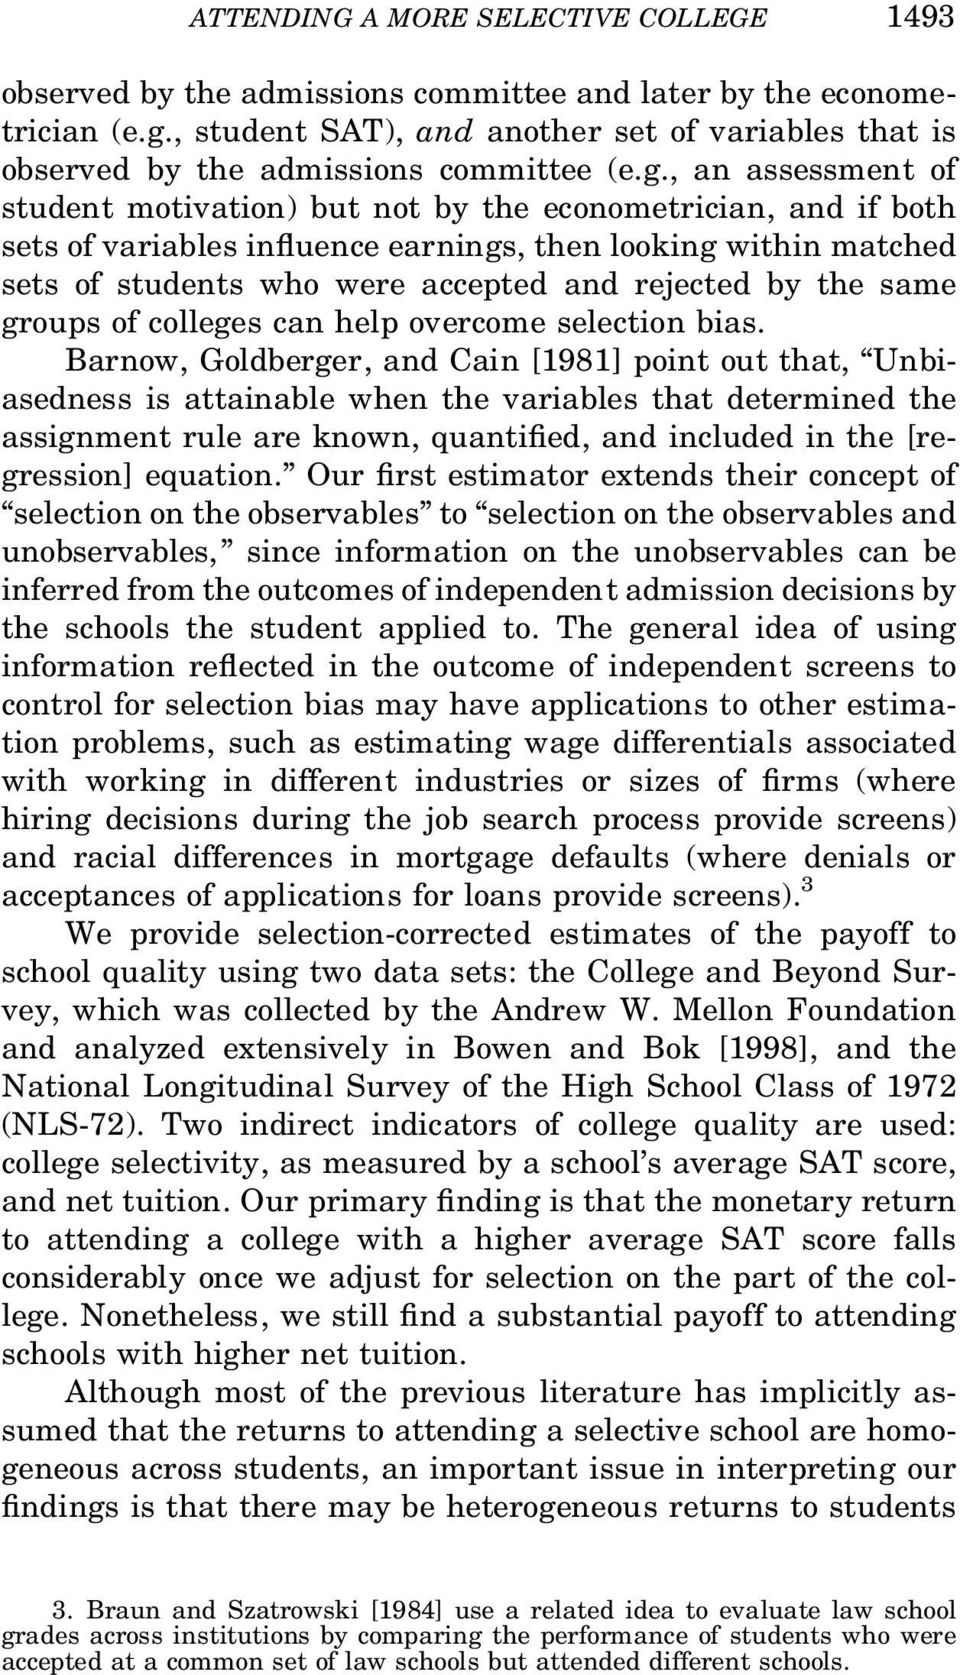 , an assessment of student motivation) but not by the econometrician, and if both sets of variables in uence earnings, then looking within matched sets of students who were accepted and rejected by